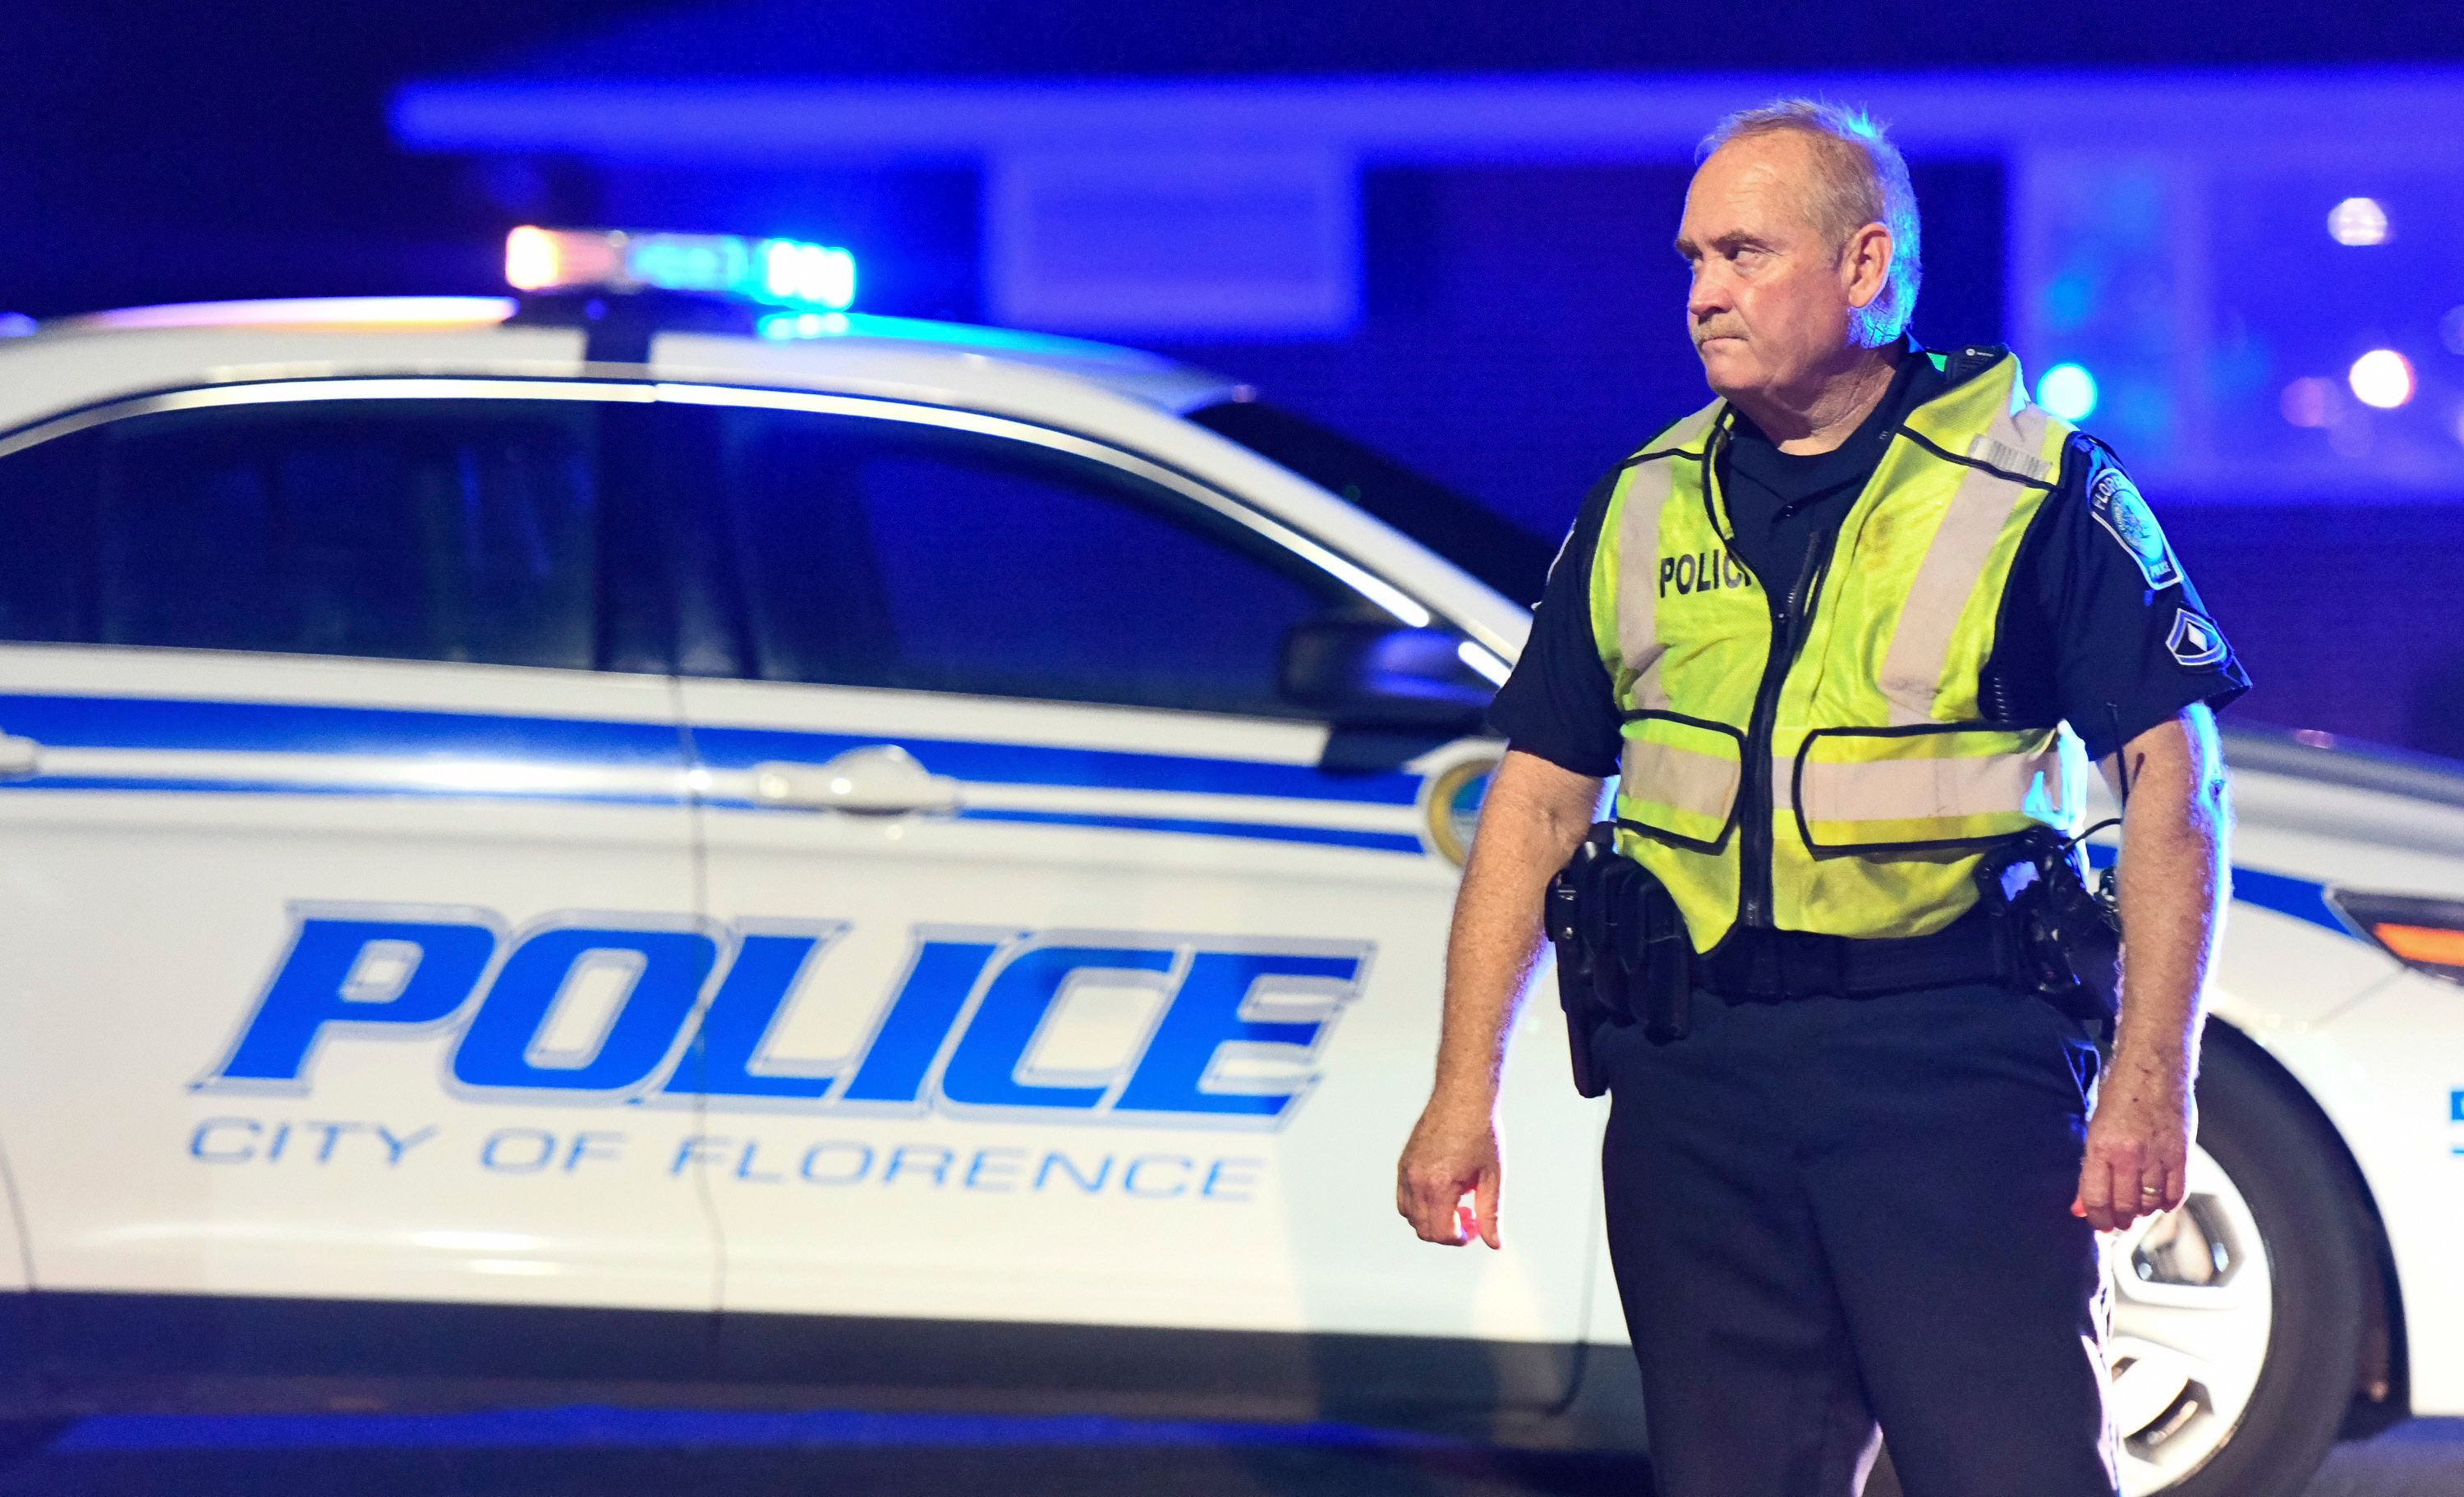 A police officer directs traffic on Hoffmeyer Road near the Vintage Place neighborhood where three deputies and two city officers were shot Wednesday in Florence SC AP Photo/Sean Rayford